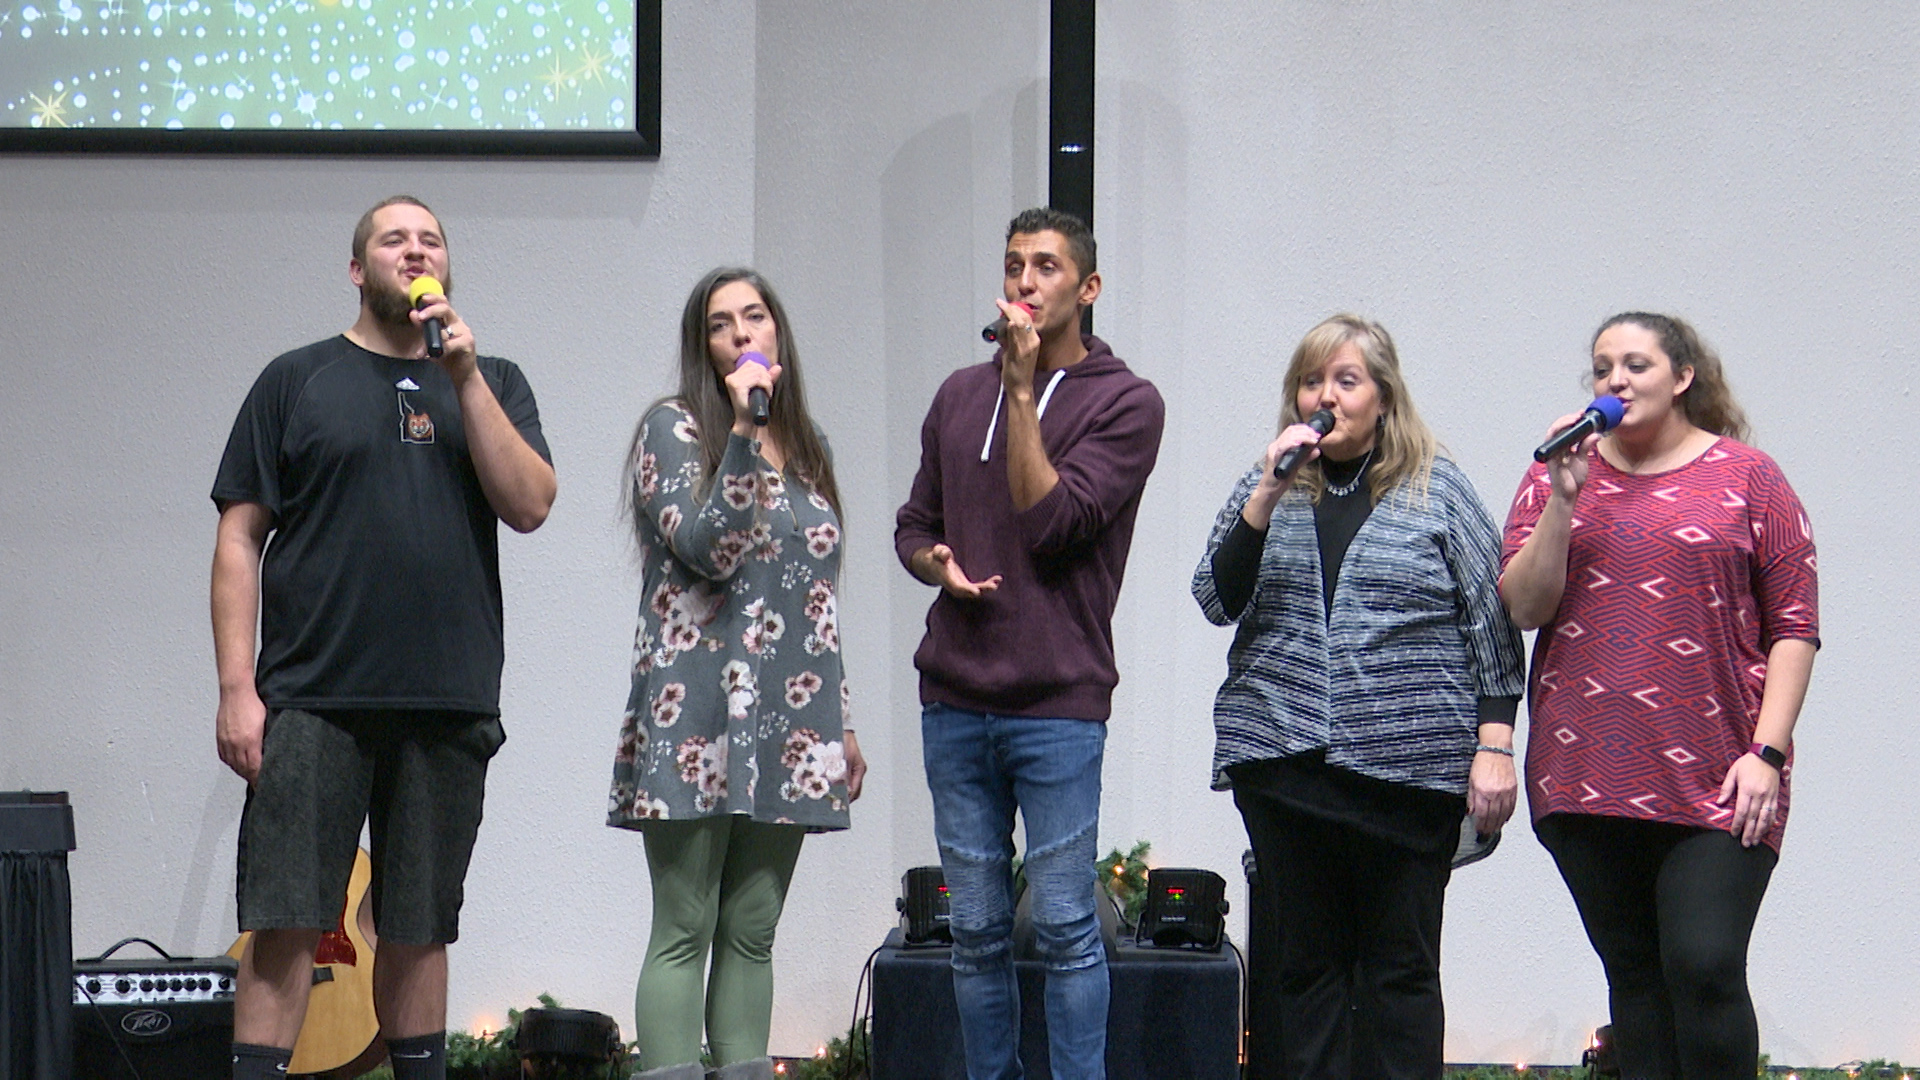 The Michaud family performs their yearly Christmas Angels concert to collect toy donations for need families.